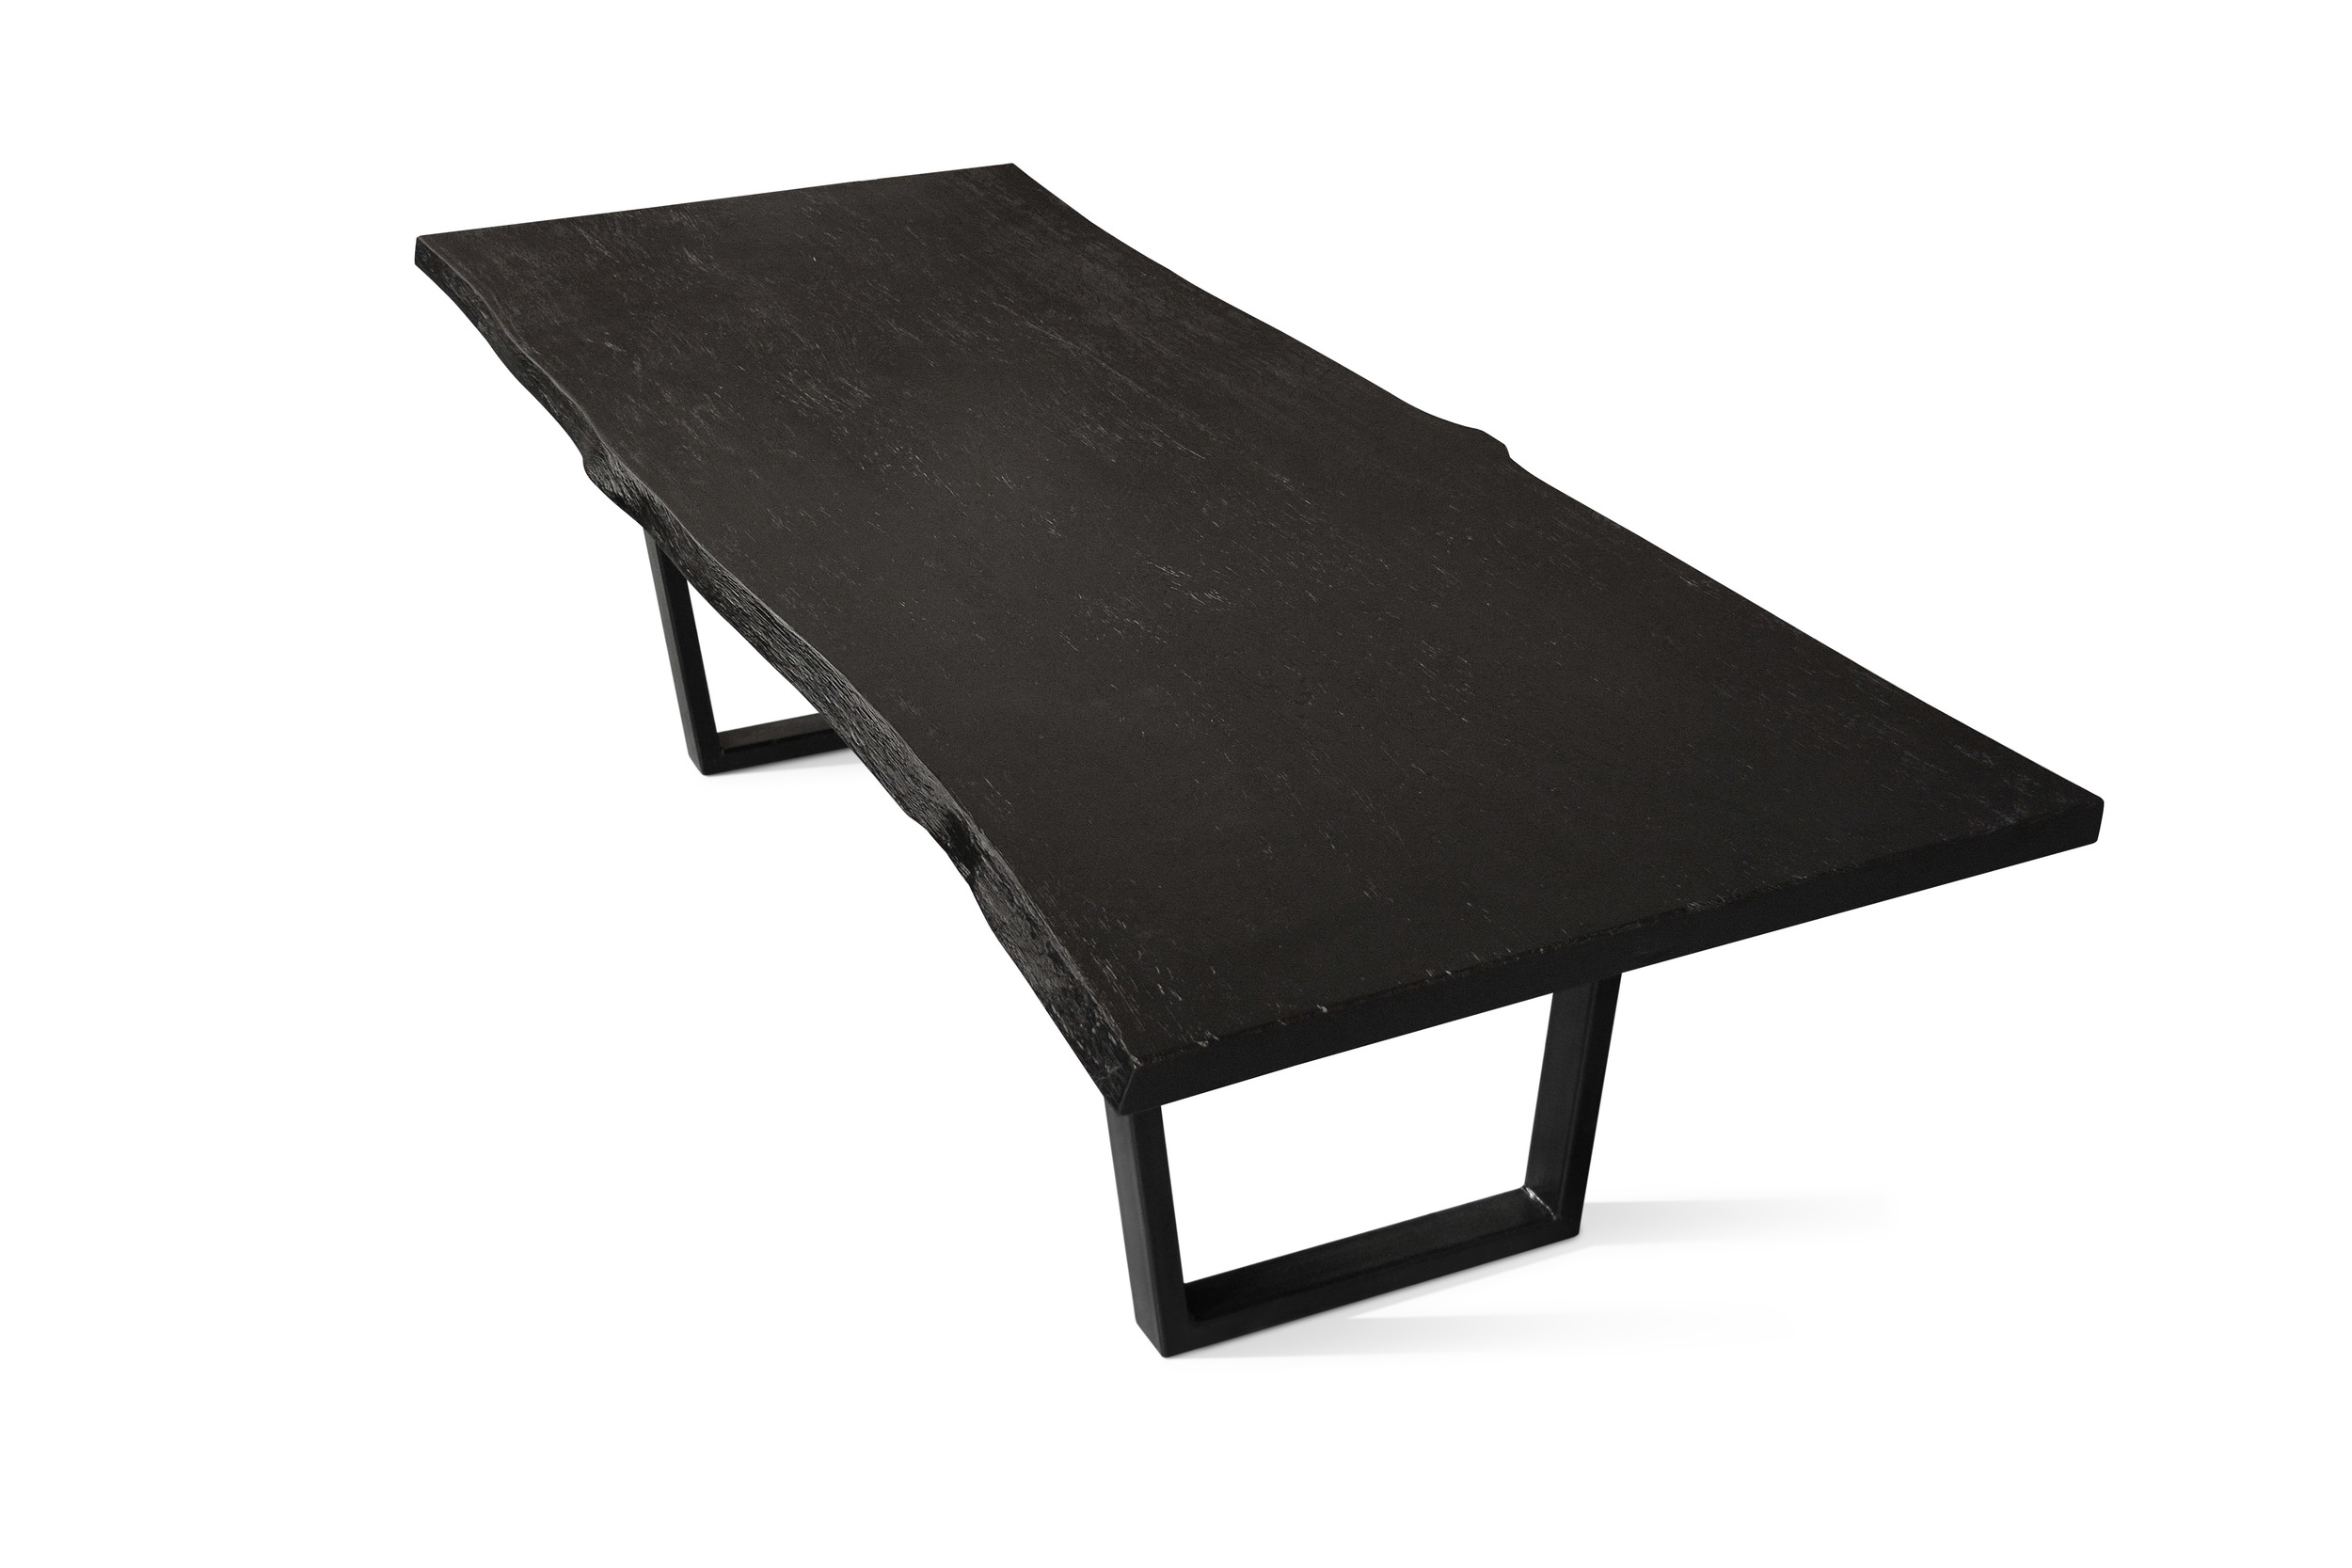 Etz & Steel Ganymede Live Edge Table Black Base 4.JPG